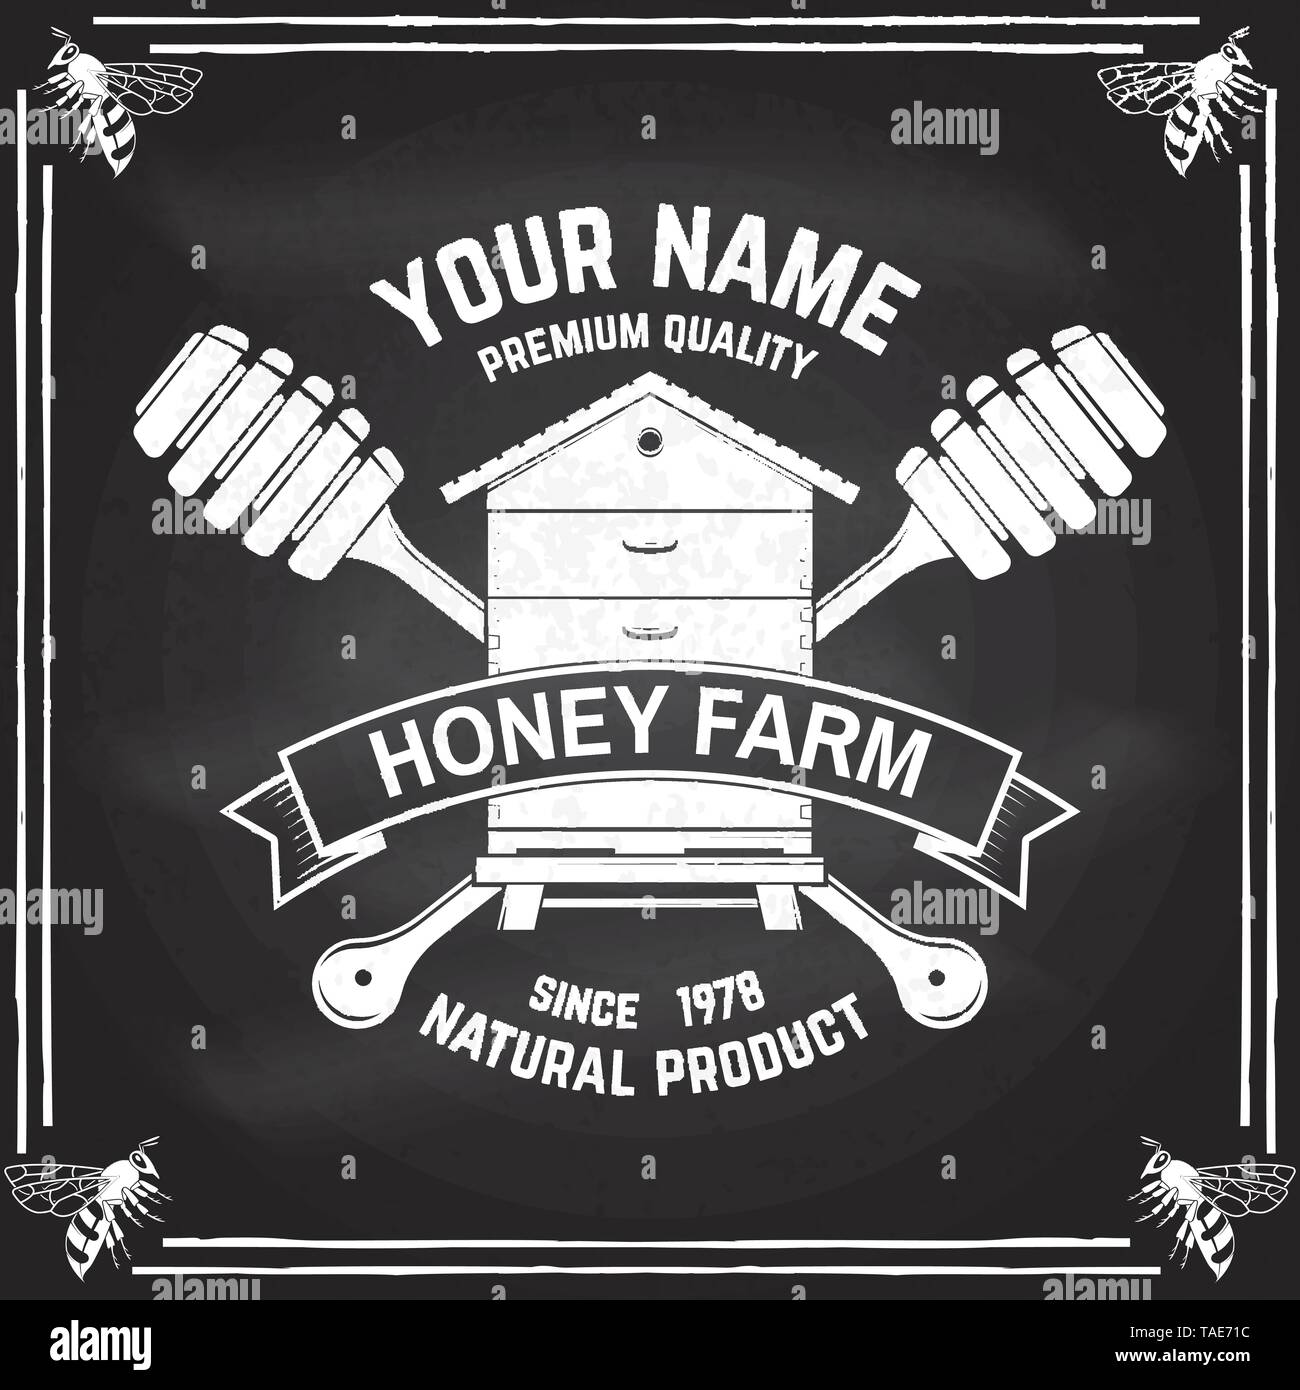 Honey farm badge. Vector on the chalkboard. Concept for shirt, print, stamp or tee. Vintage typography design with hive and honey dipper silhouette. Retro design for honey bee farm business - Stock Vector